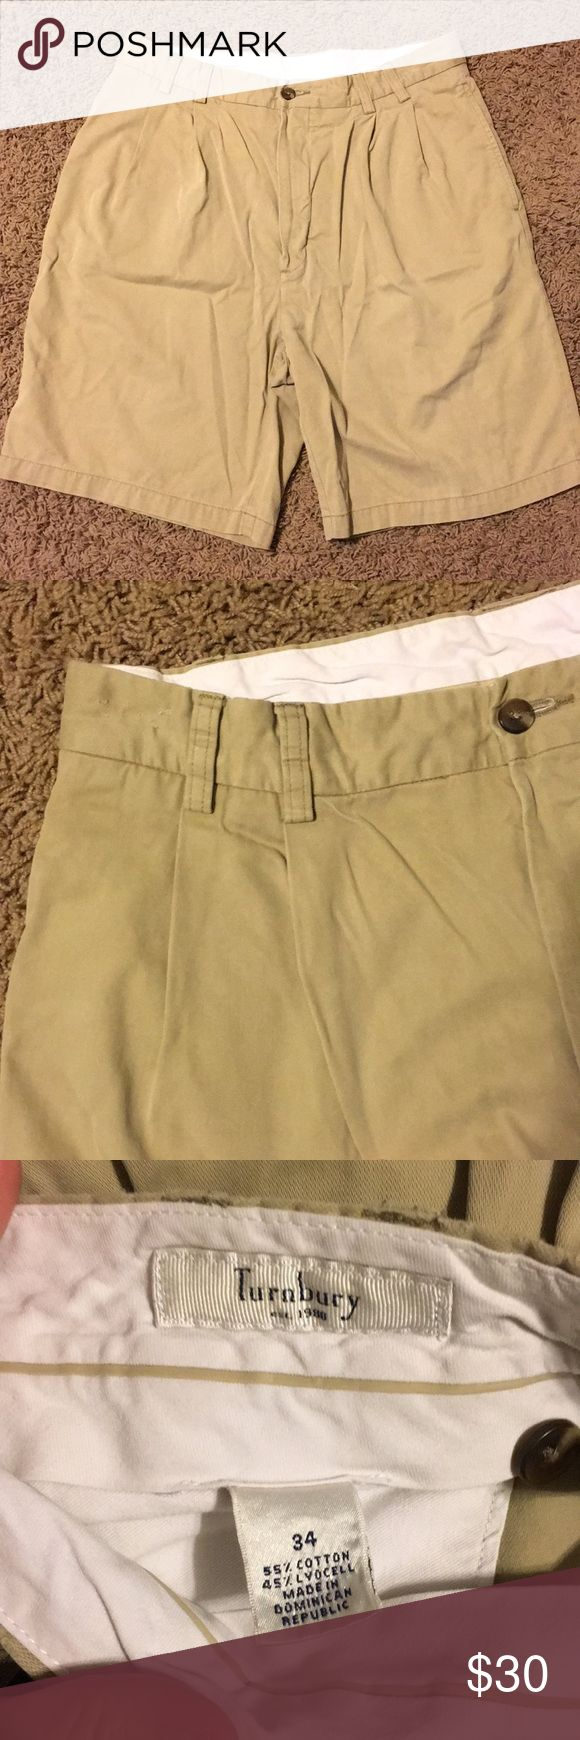 Men's khaki shorts Men's khaki shorts by Turnbury. Perfect condition other than some snags in the waist band indicated in the photos. Very soft. Has two pleats on each front leg. Turnbury Shorts Flat Front